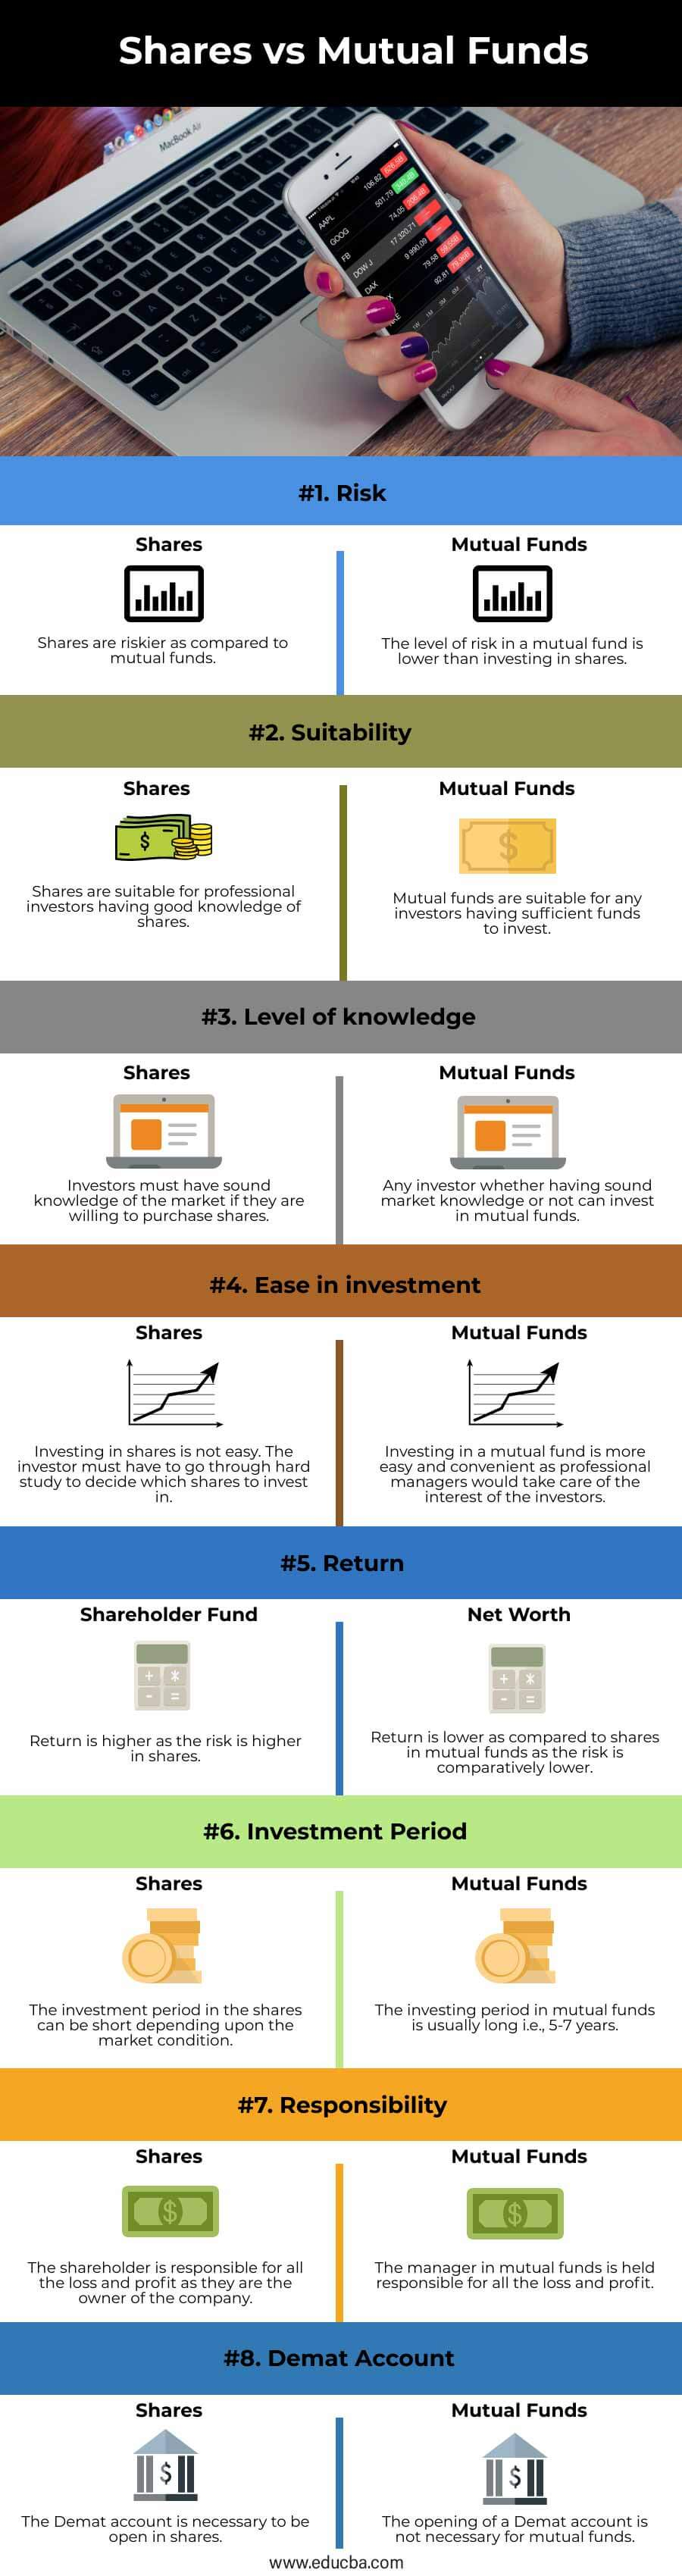 Shares-vs-Mutual-Funds-info